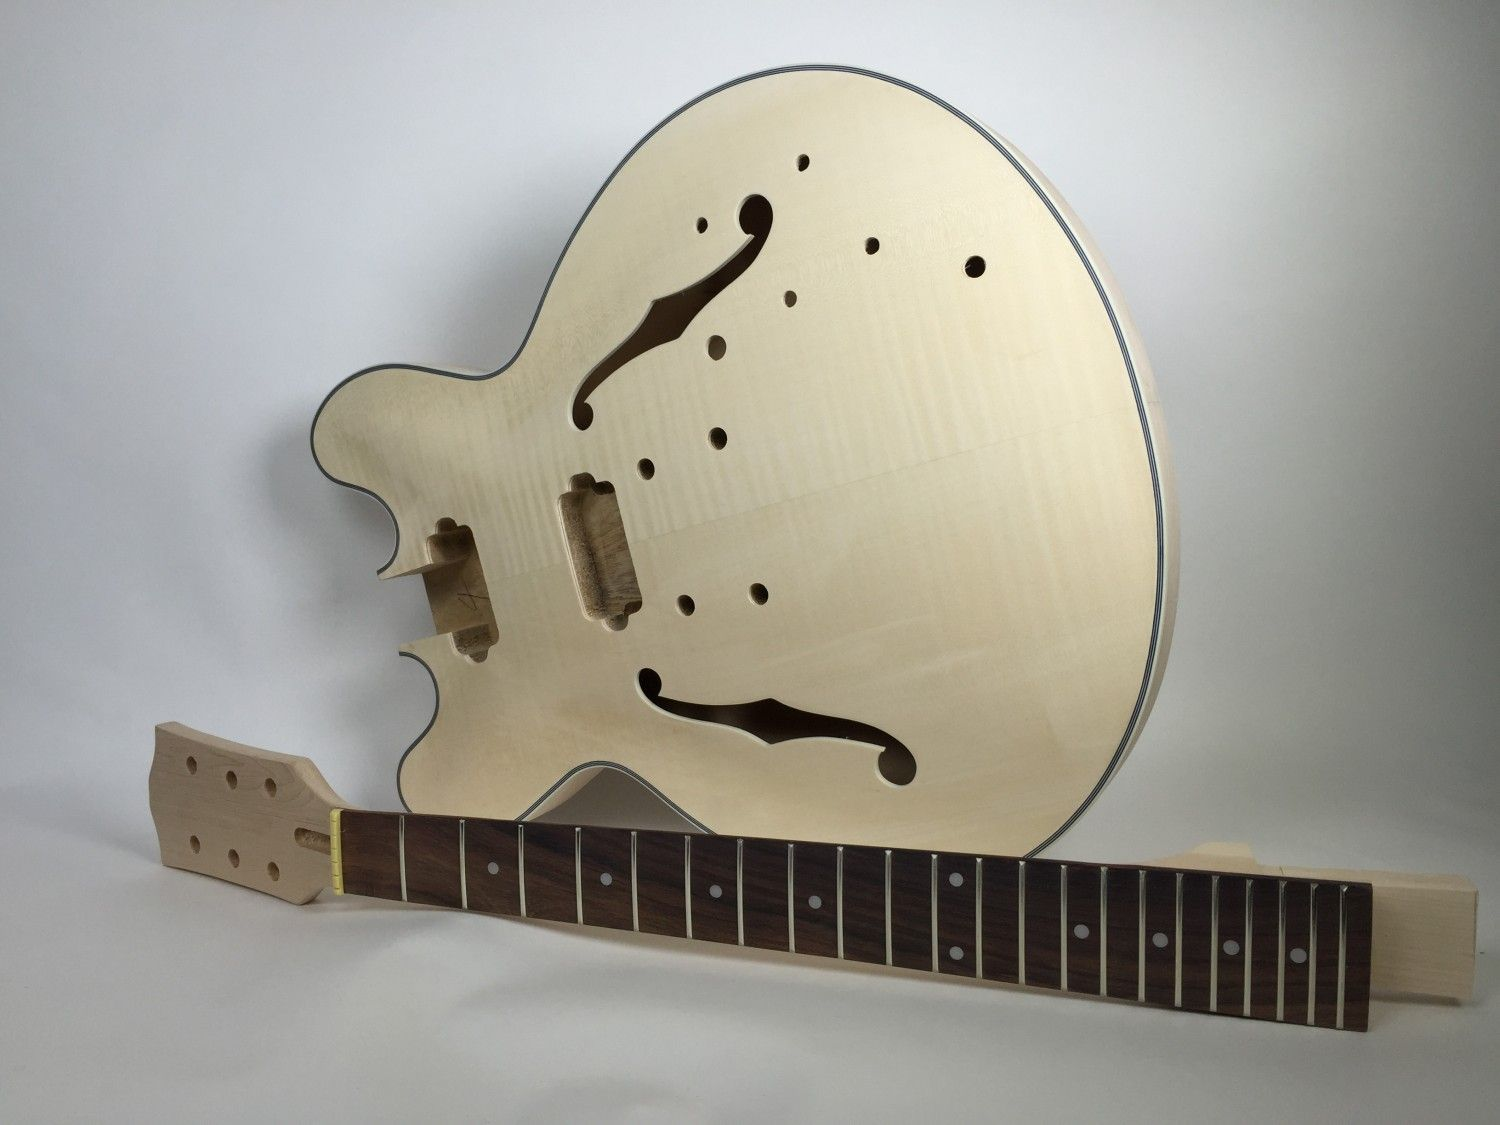 Diy electric guitar kit 335 style build your own guitar